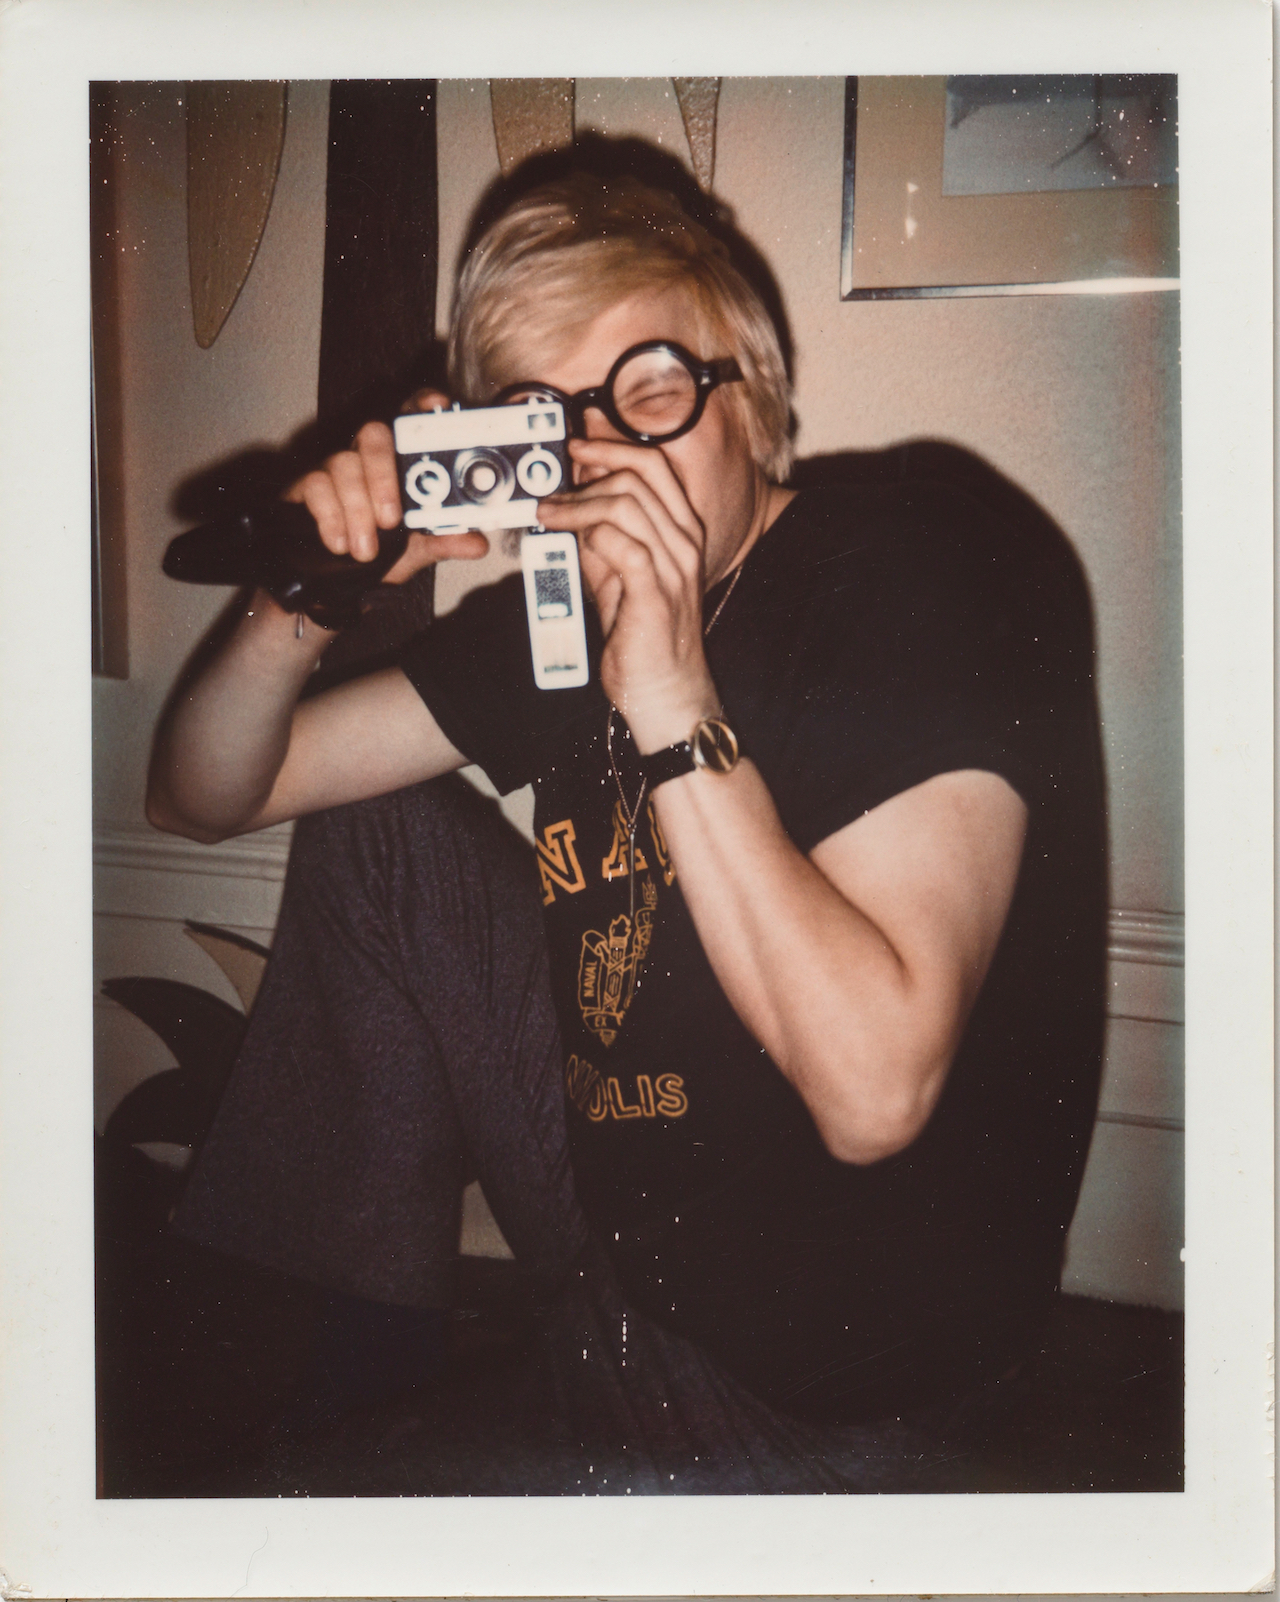 andy-warhol-david-hockney-ca_-1972-polaroid-10_7-x-8_5-cm_-2018-the-andy-warhol-foundation-for-the-visual-arts-inc_-licensed-by-dacs-london_-courtesy-bastian-london.jpg